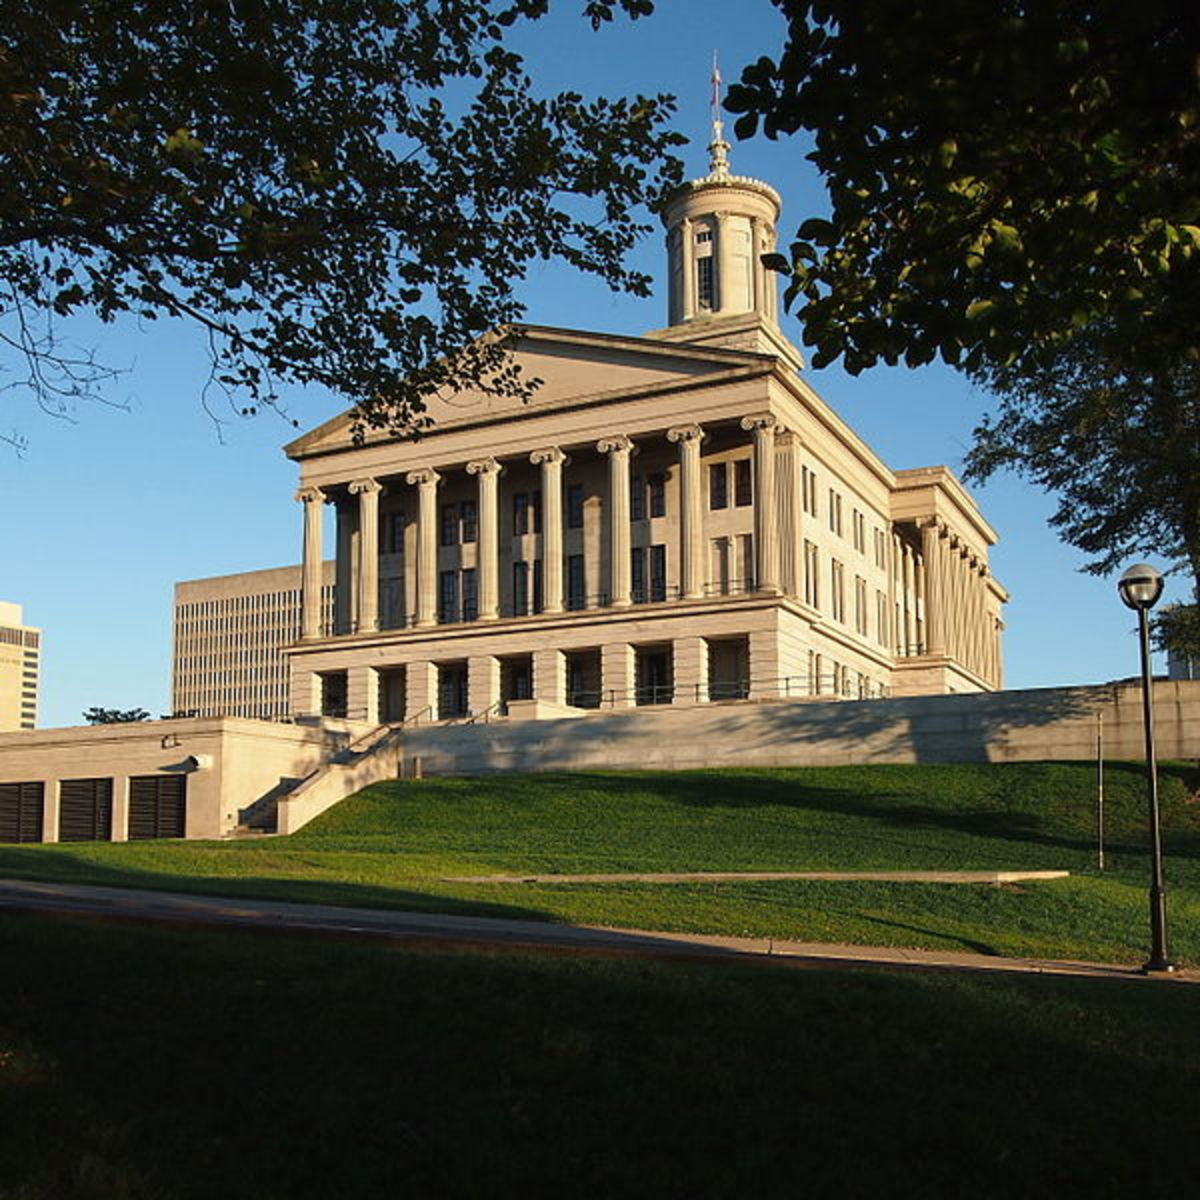 An uphill view the historic Tennessee State Capitol building.